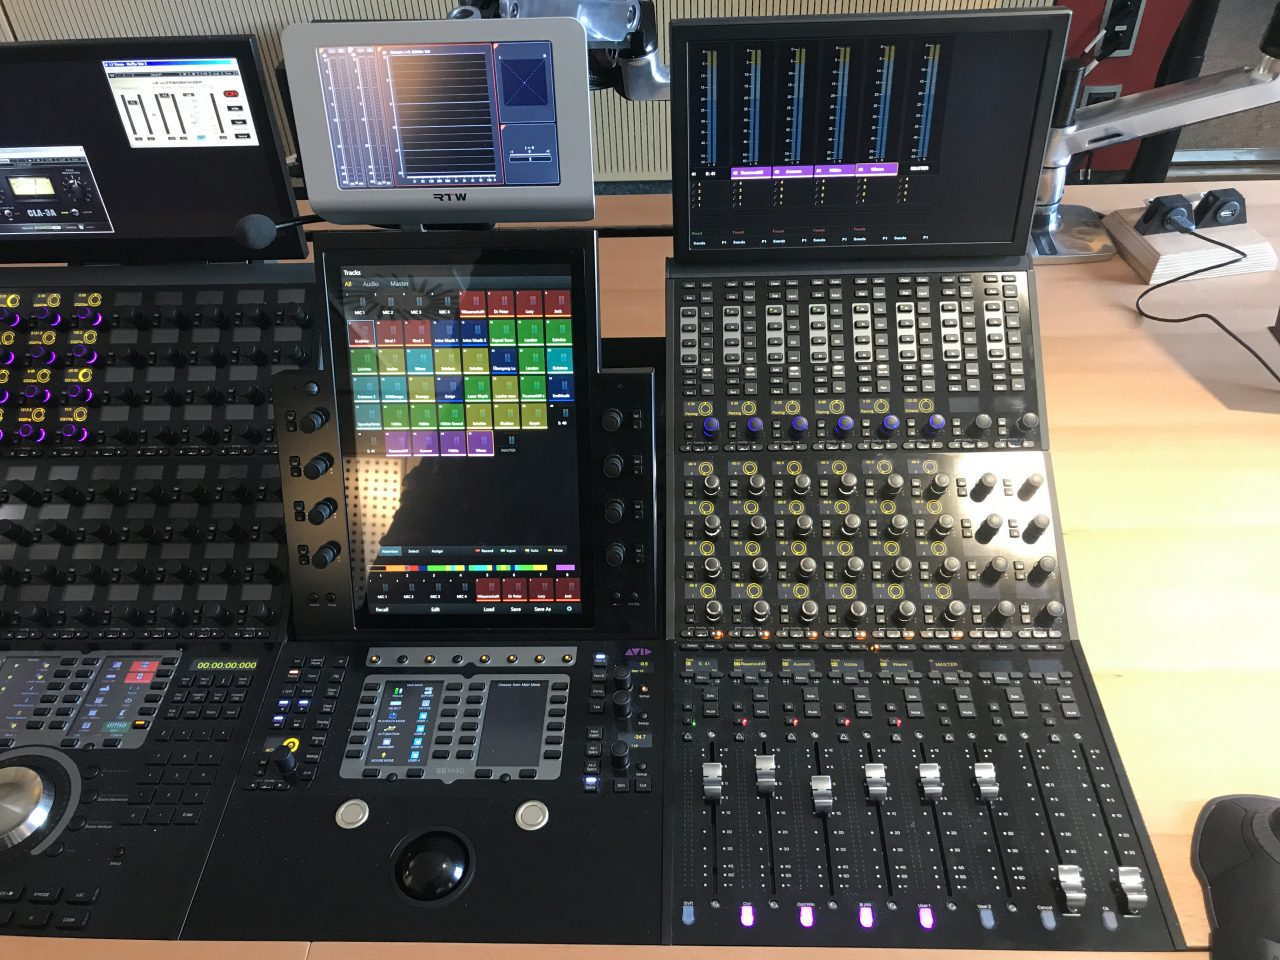 NDR Radio Station Invests in Pro Tools | S6 to Be Used with Third